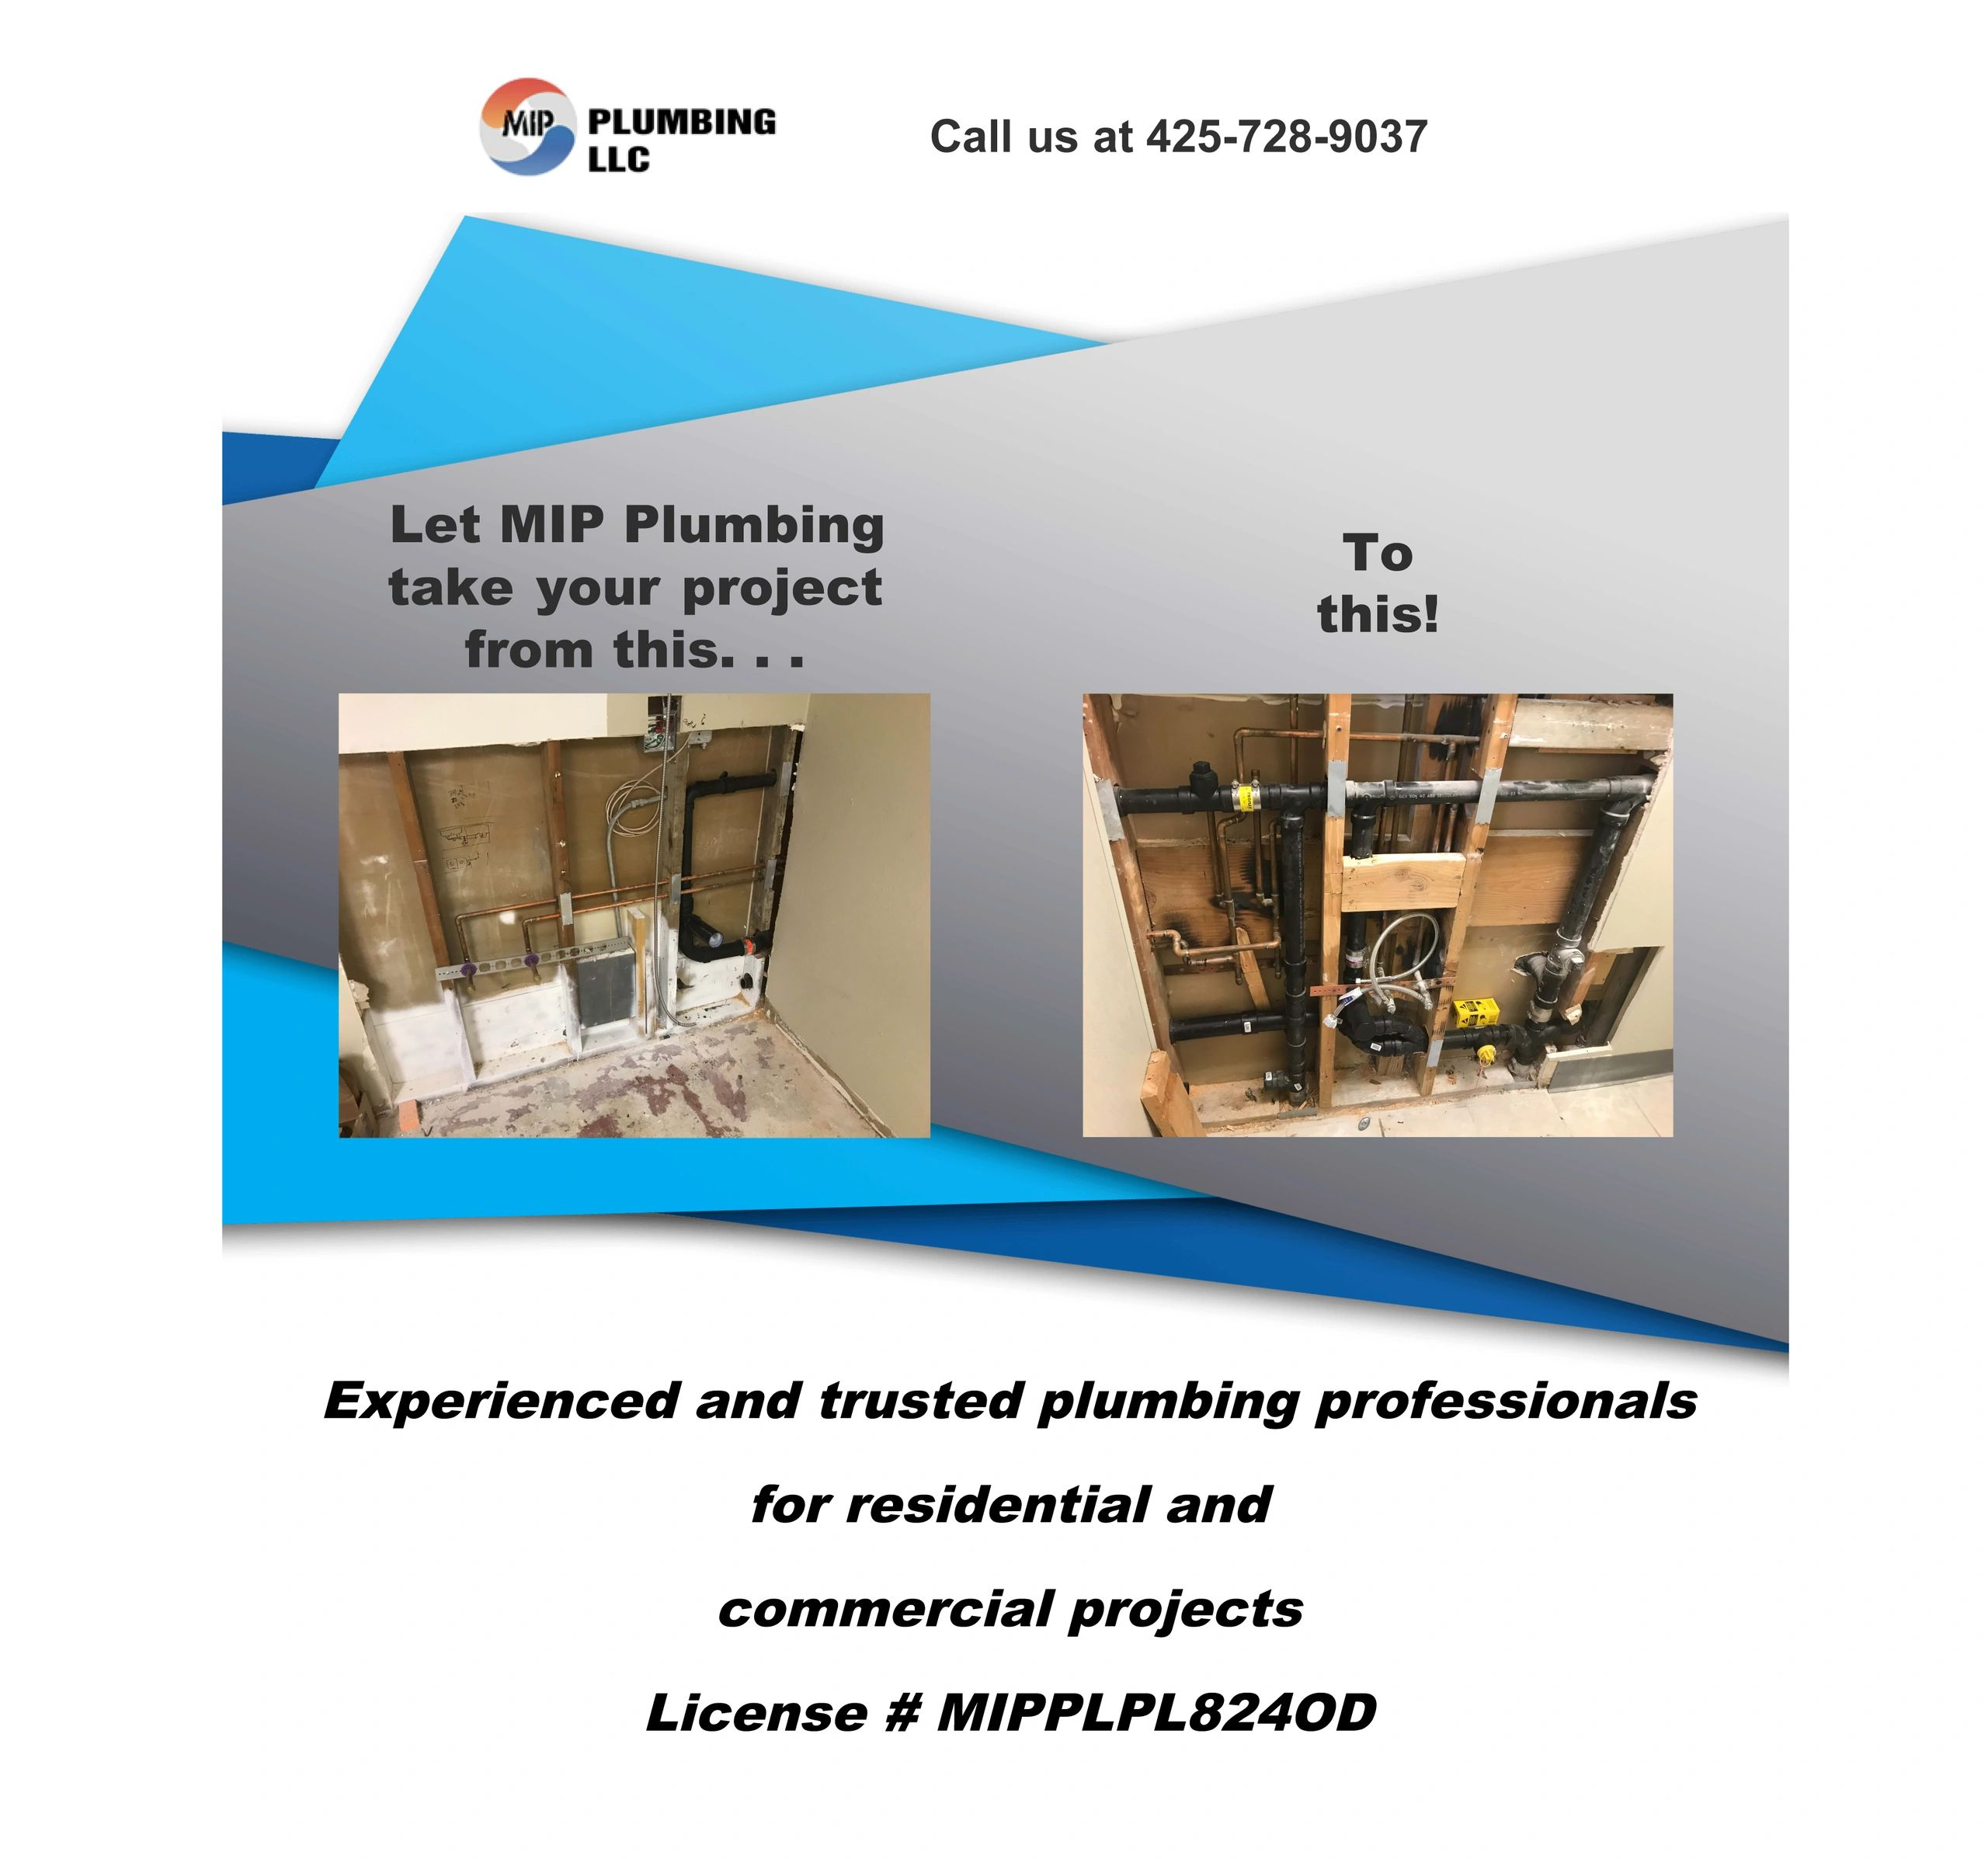 Experienced and trusted plumbing professionals serving Western Washington state. 425-728-9037